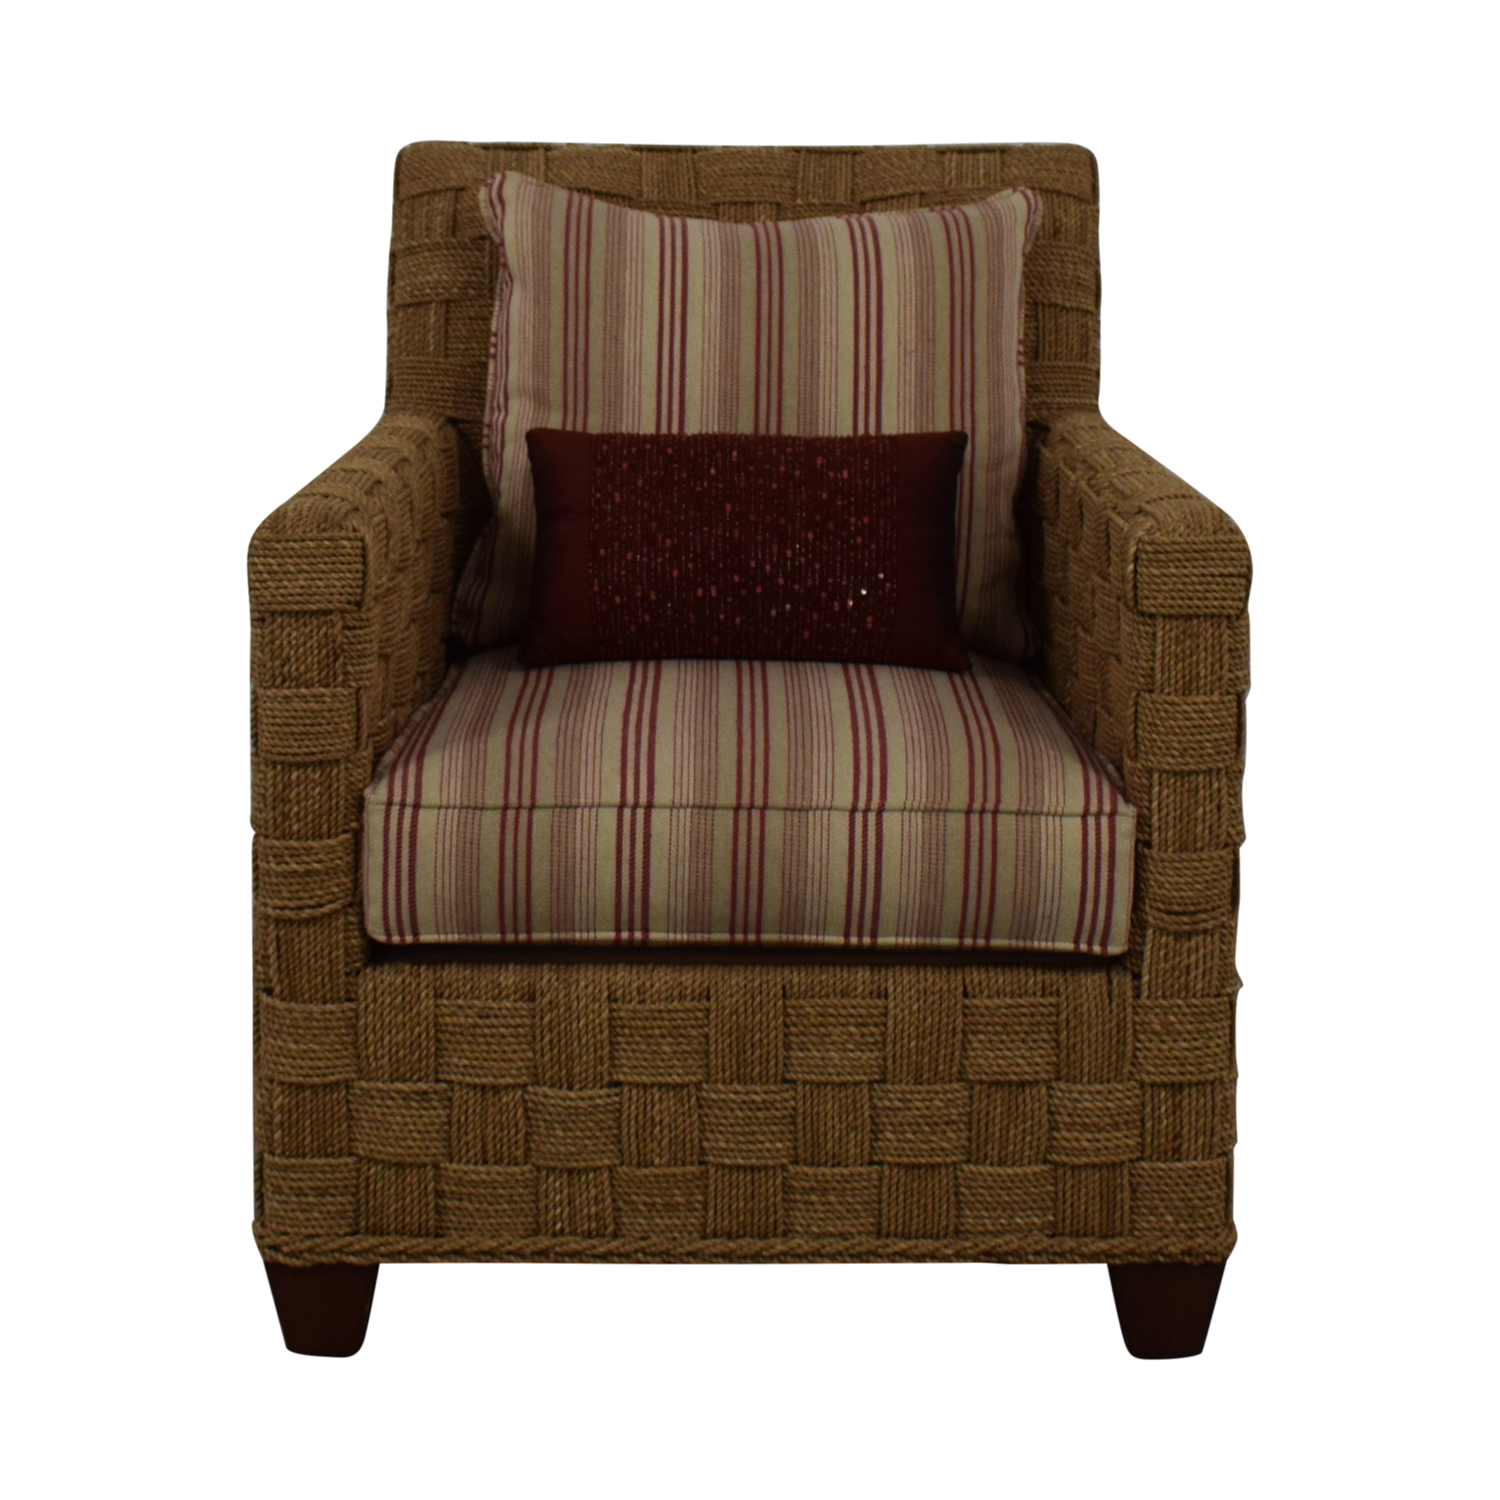 Ethan Allen Balta Accent Chair / Accent Chairs